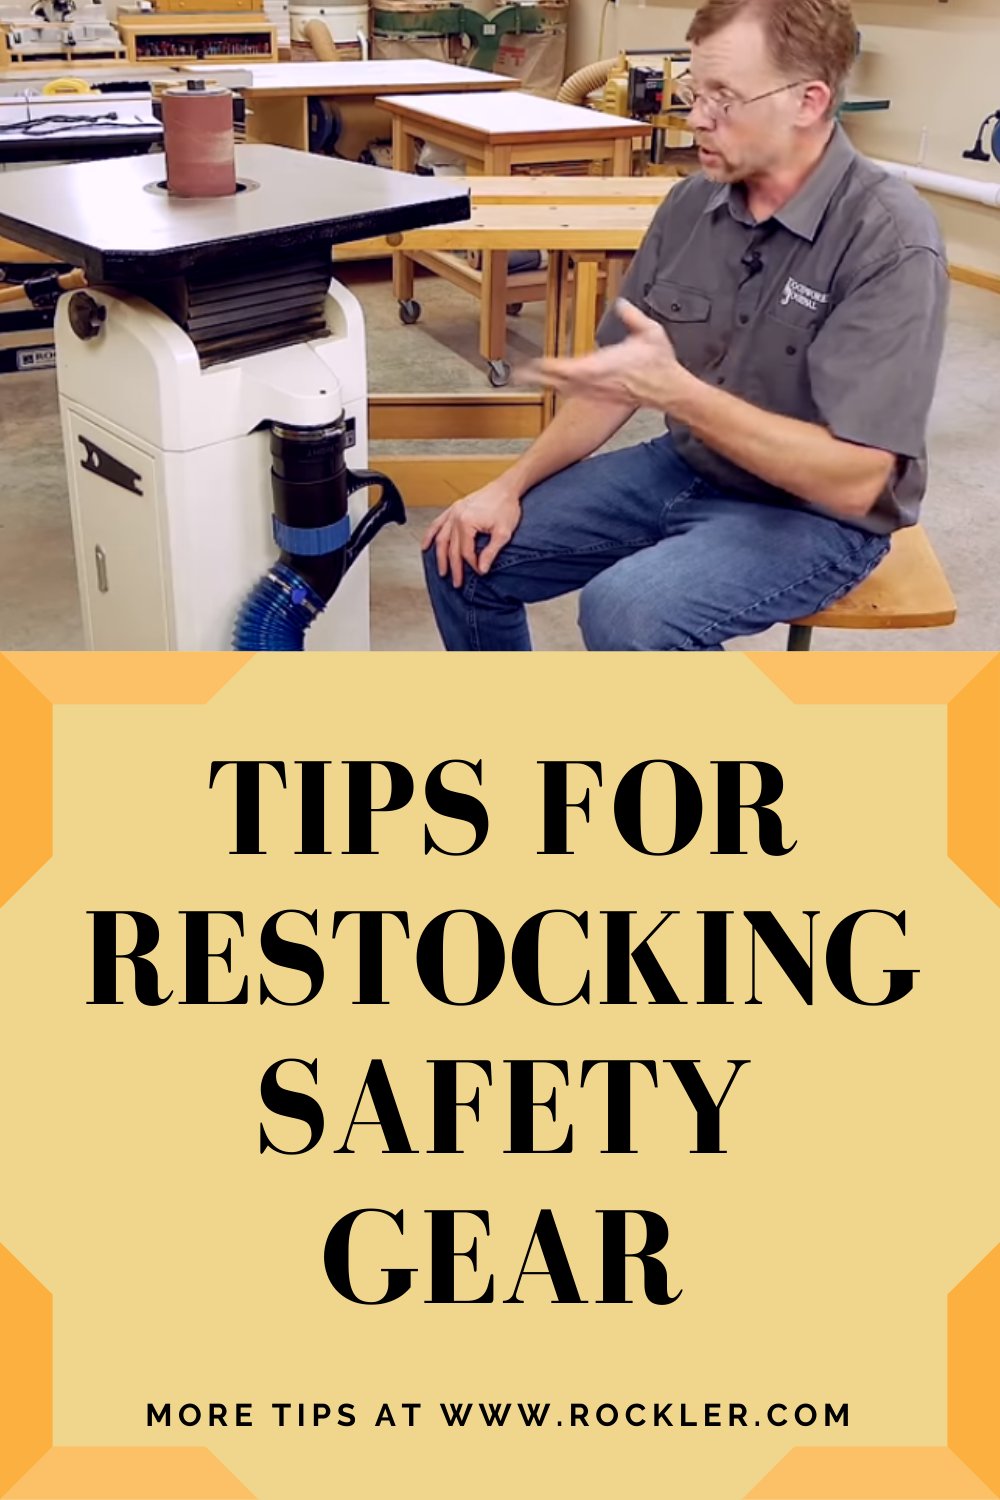 Tips for Restocking Safety Gear Rockler Wood working